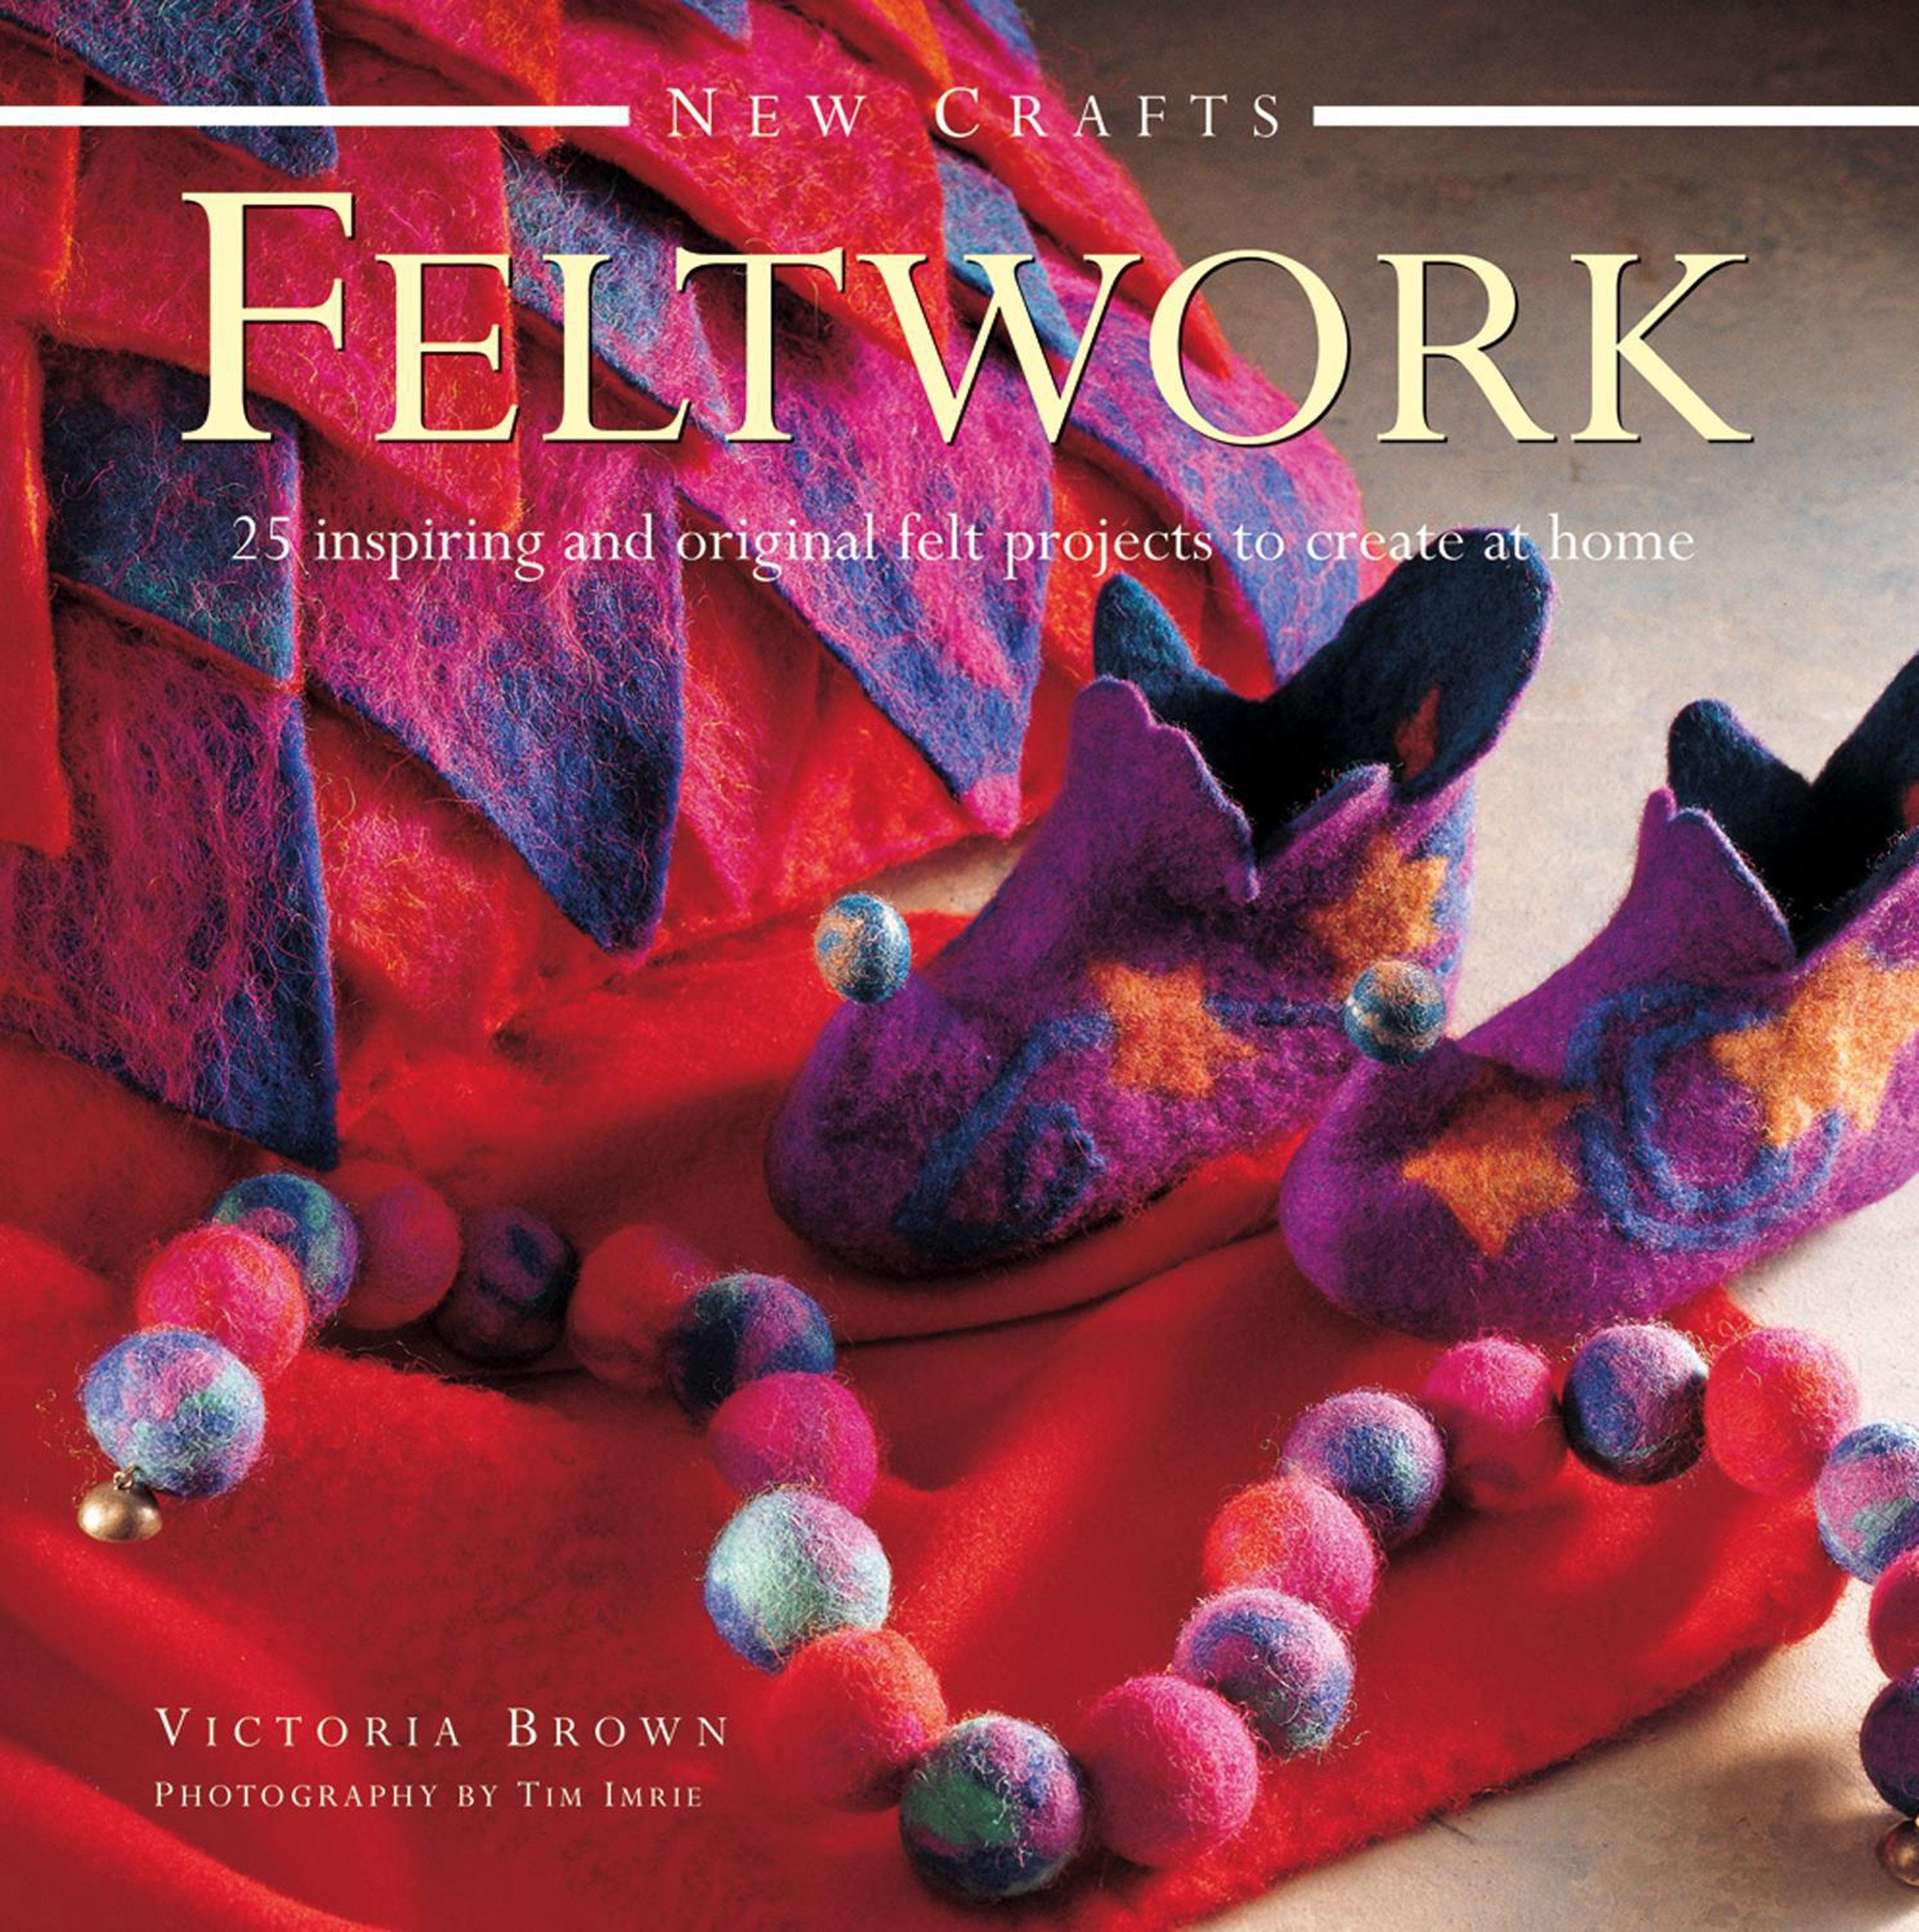 New Crafts: Feltwork: 25 Inspiring And Original Felt Projects To Create At Home